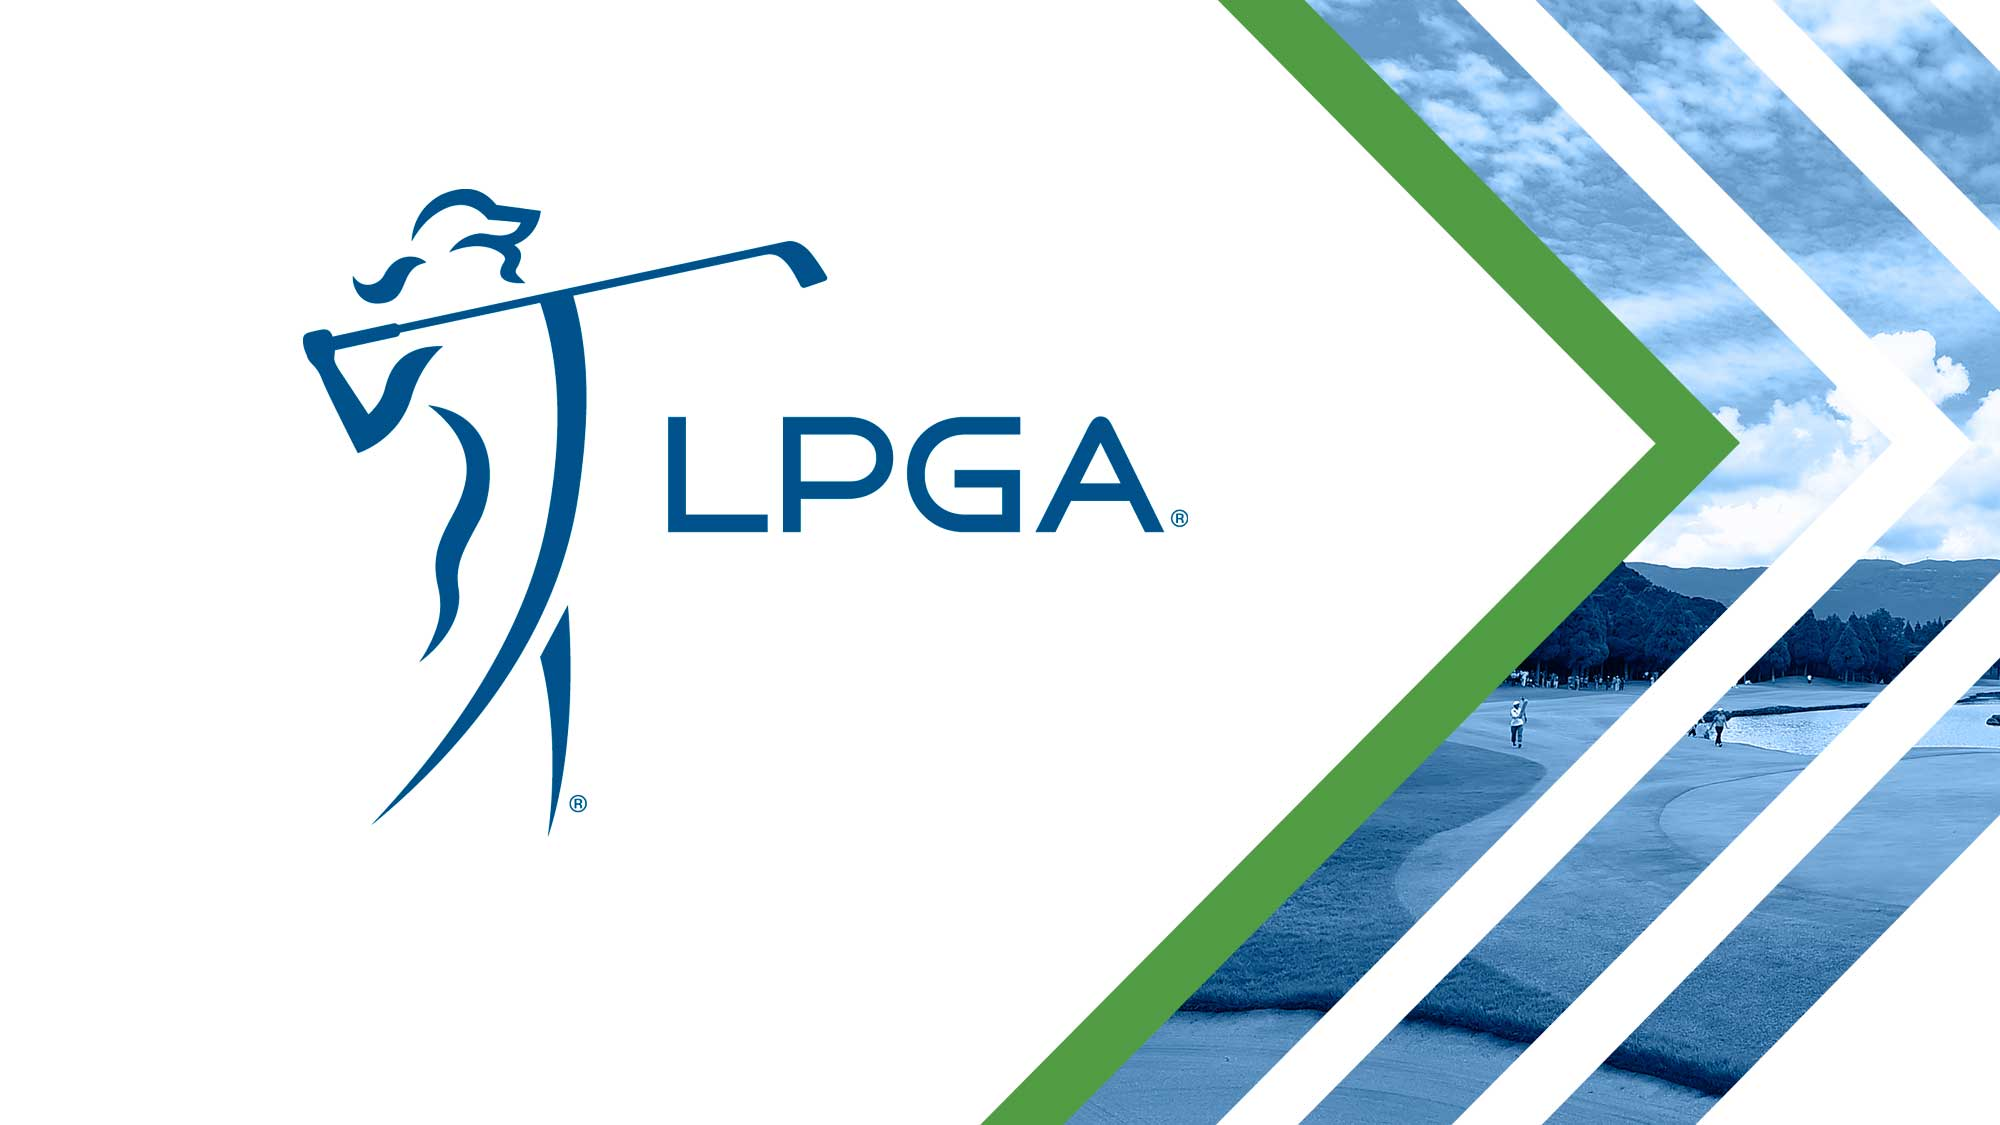 LPGA Helps Raise Awareness on National Golf Day